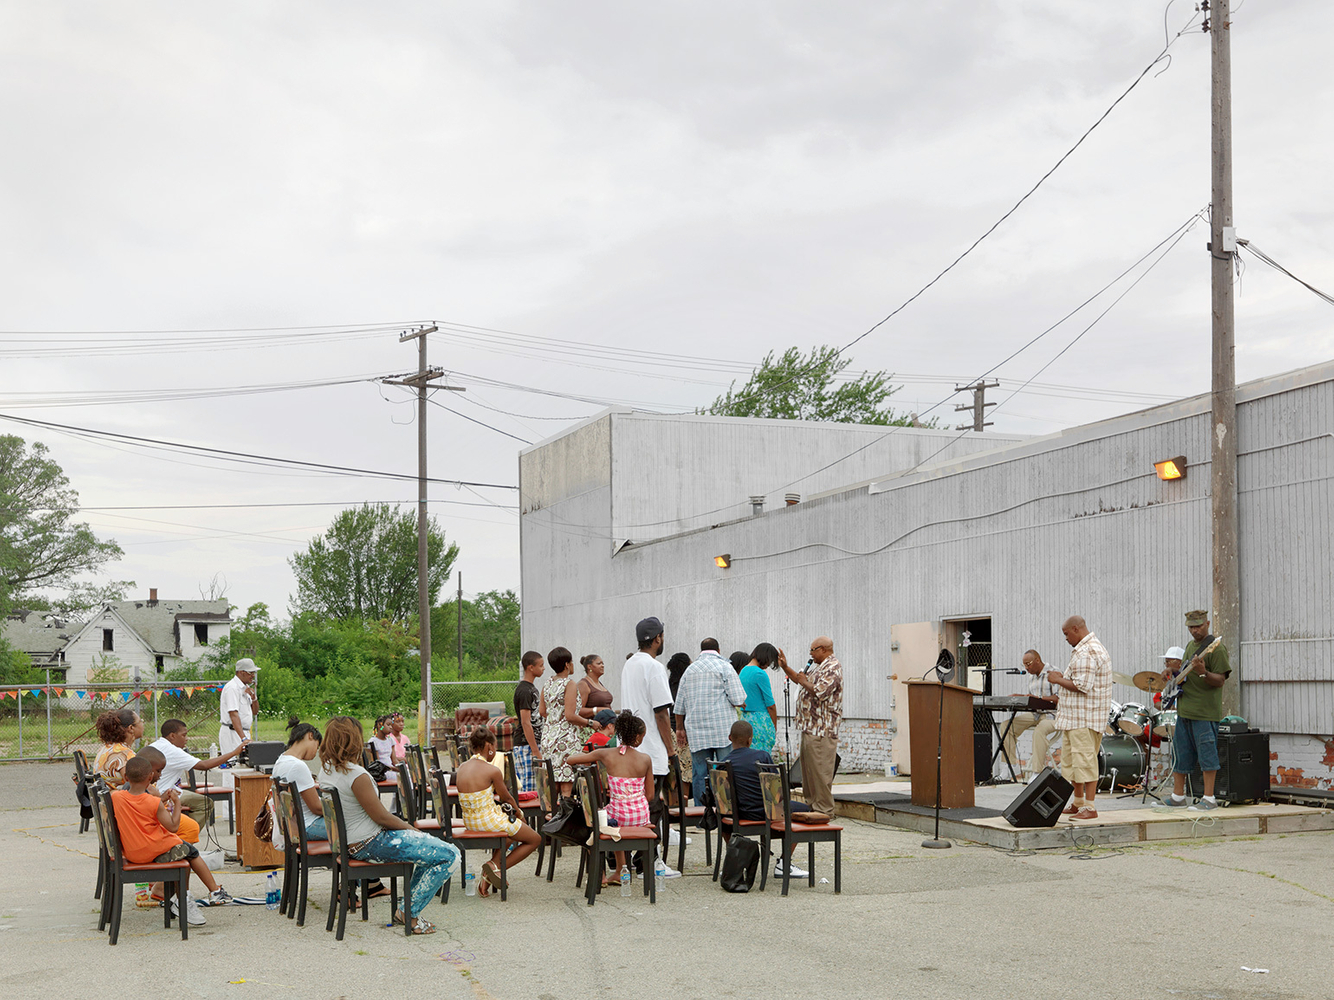 Outdoor Church Service, Eastside, Detroit 2010